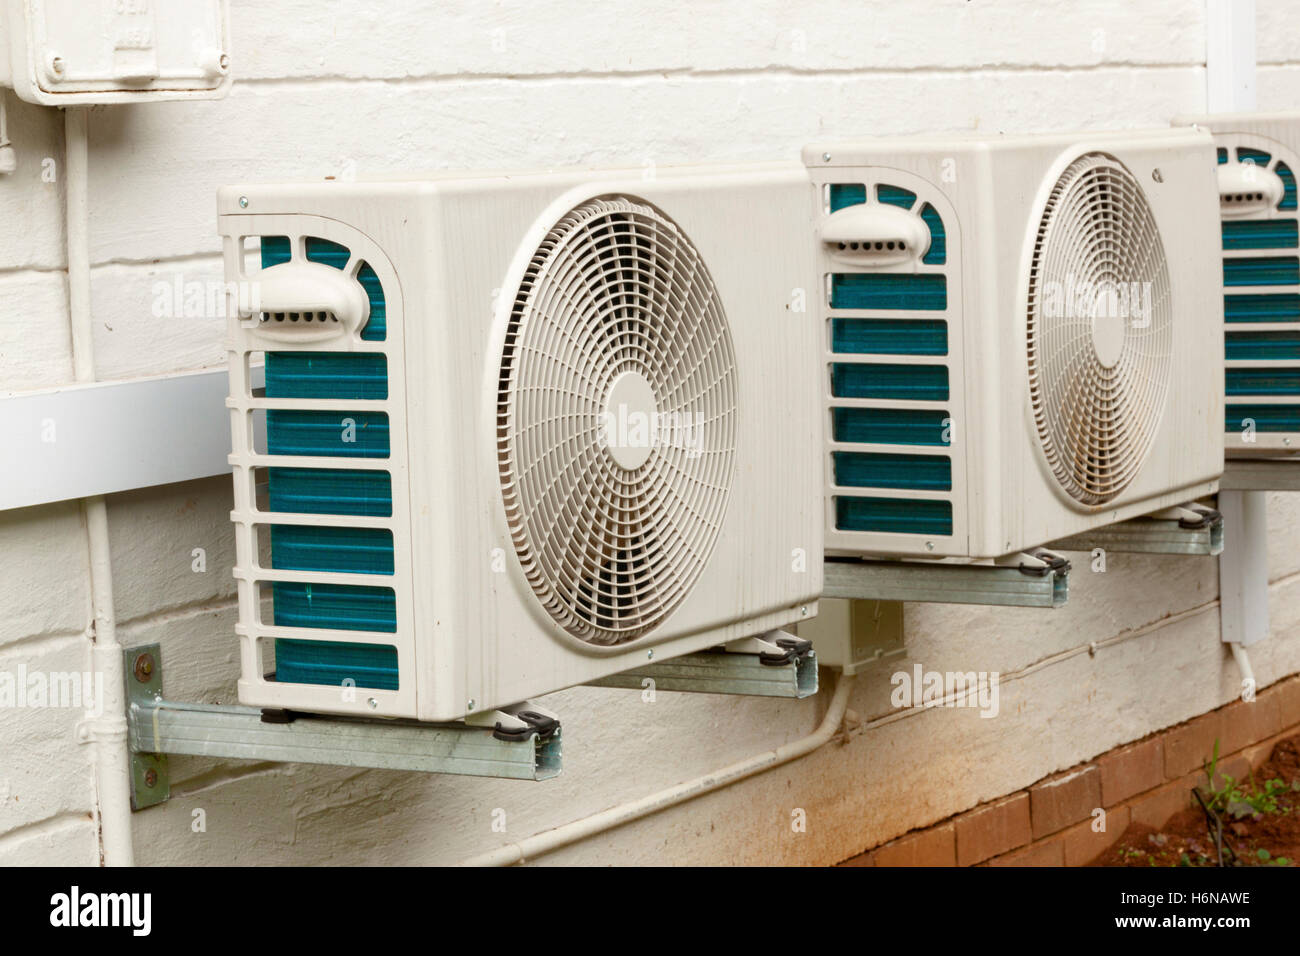 Three weathered white air conditioning unit mounted on